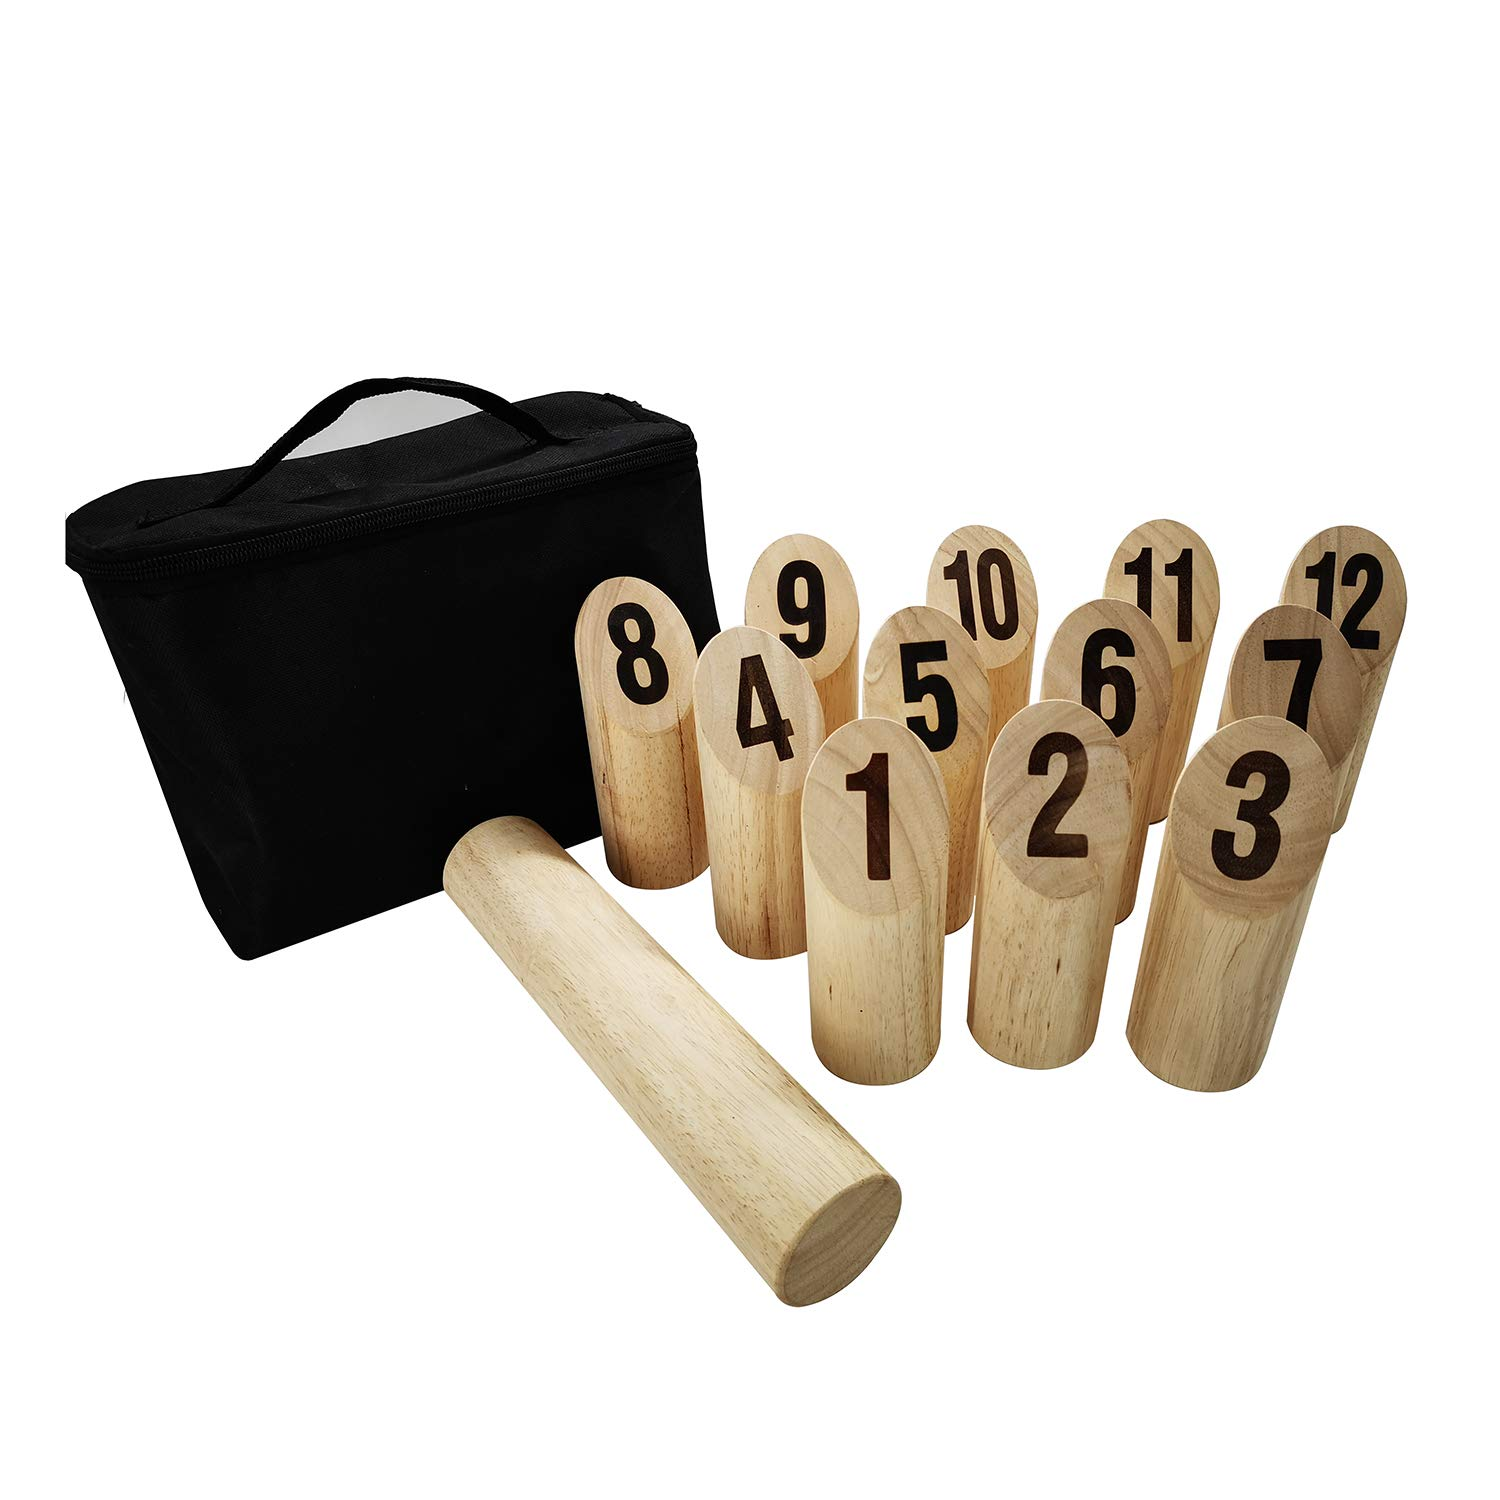 PatiolineRubberwood Number Viking Kubb Set - Outdoor Wooden Throwing Game Giant Yard Lawn Game for Adults Family